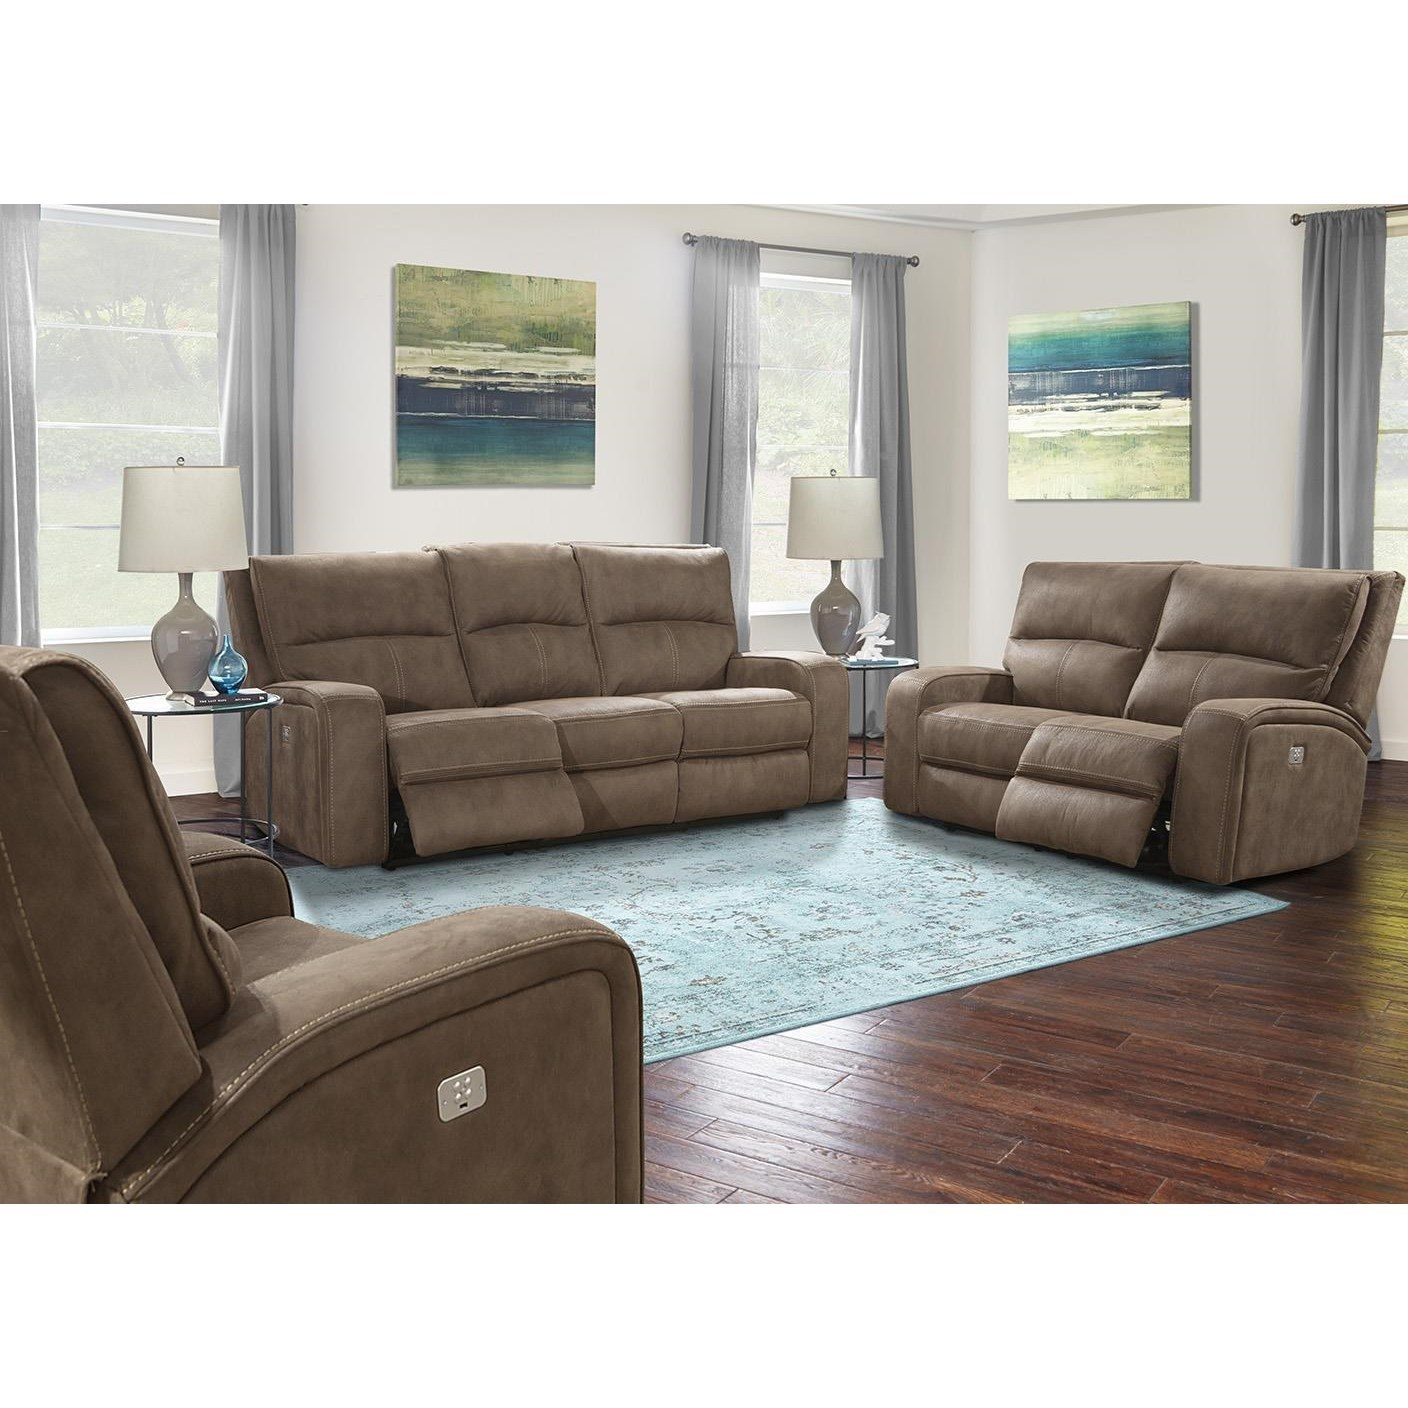 Superieur Parker Living Polaris KahluaPower Reclining Living Room Group